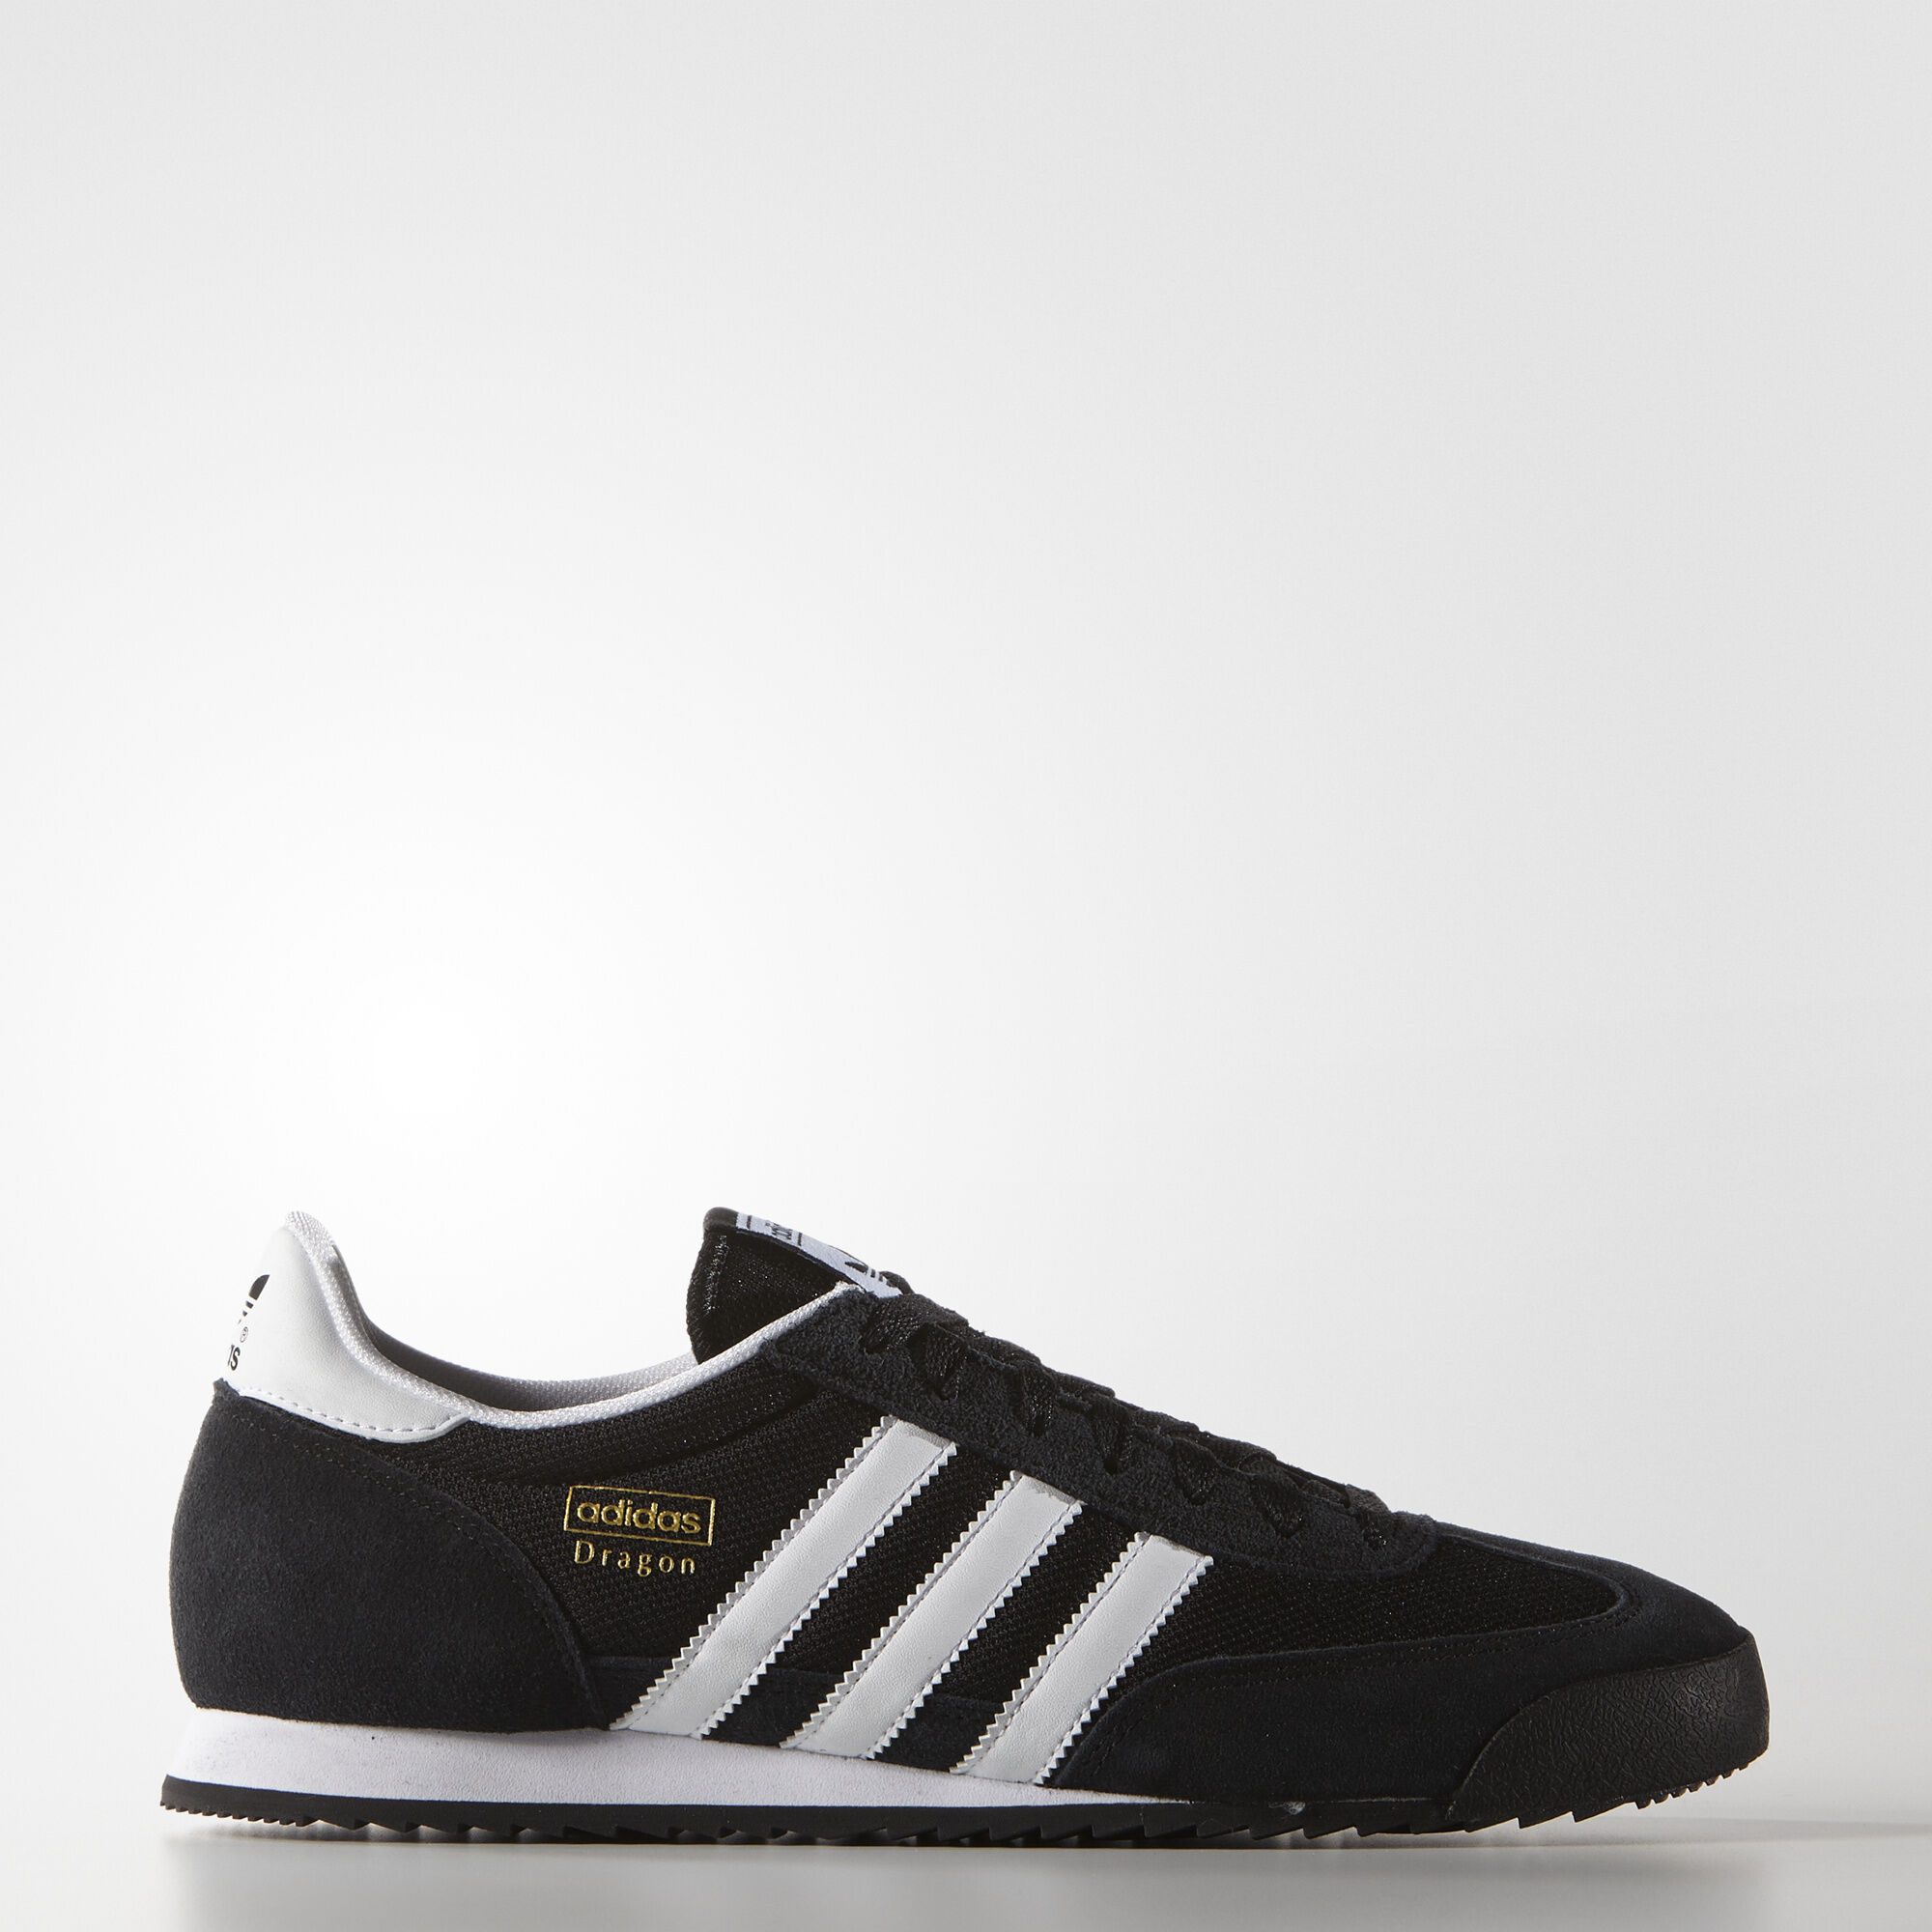 Adidas Shoes White And Black And Gold